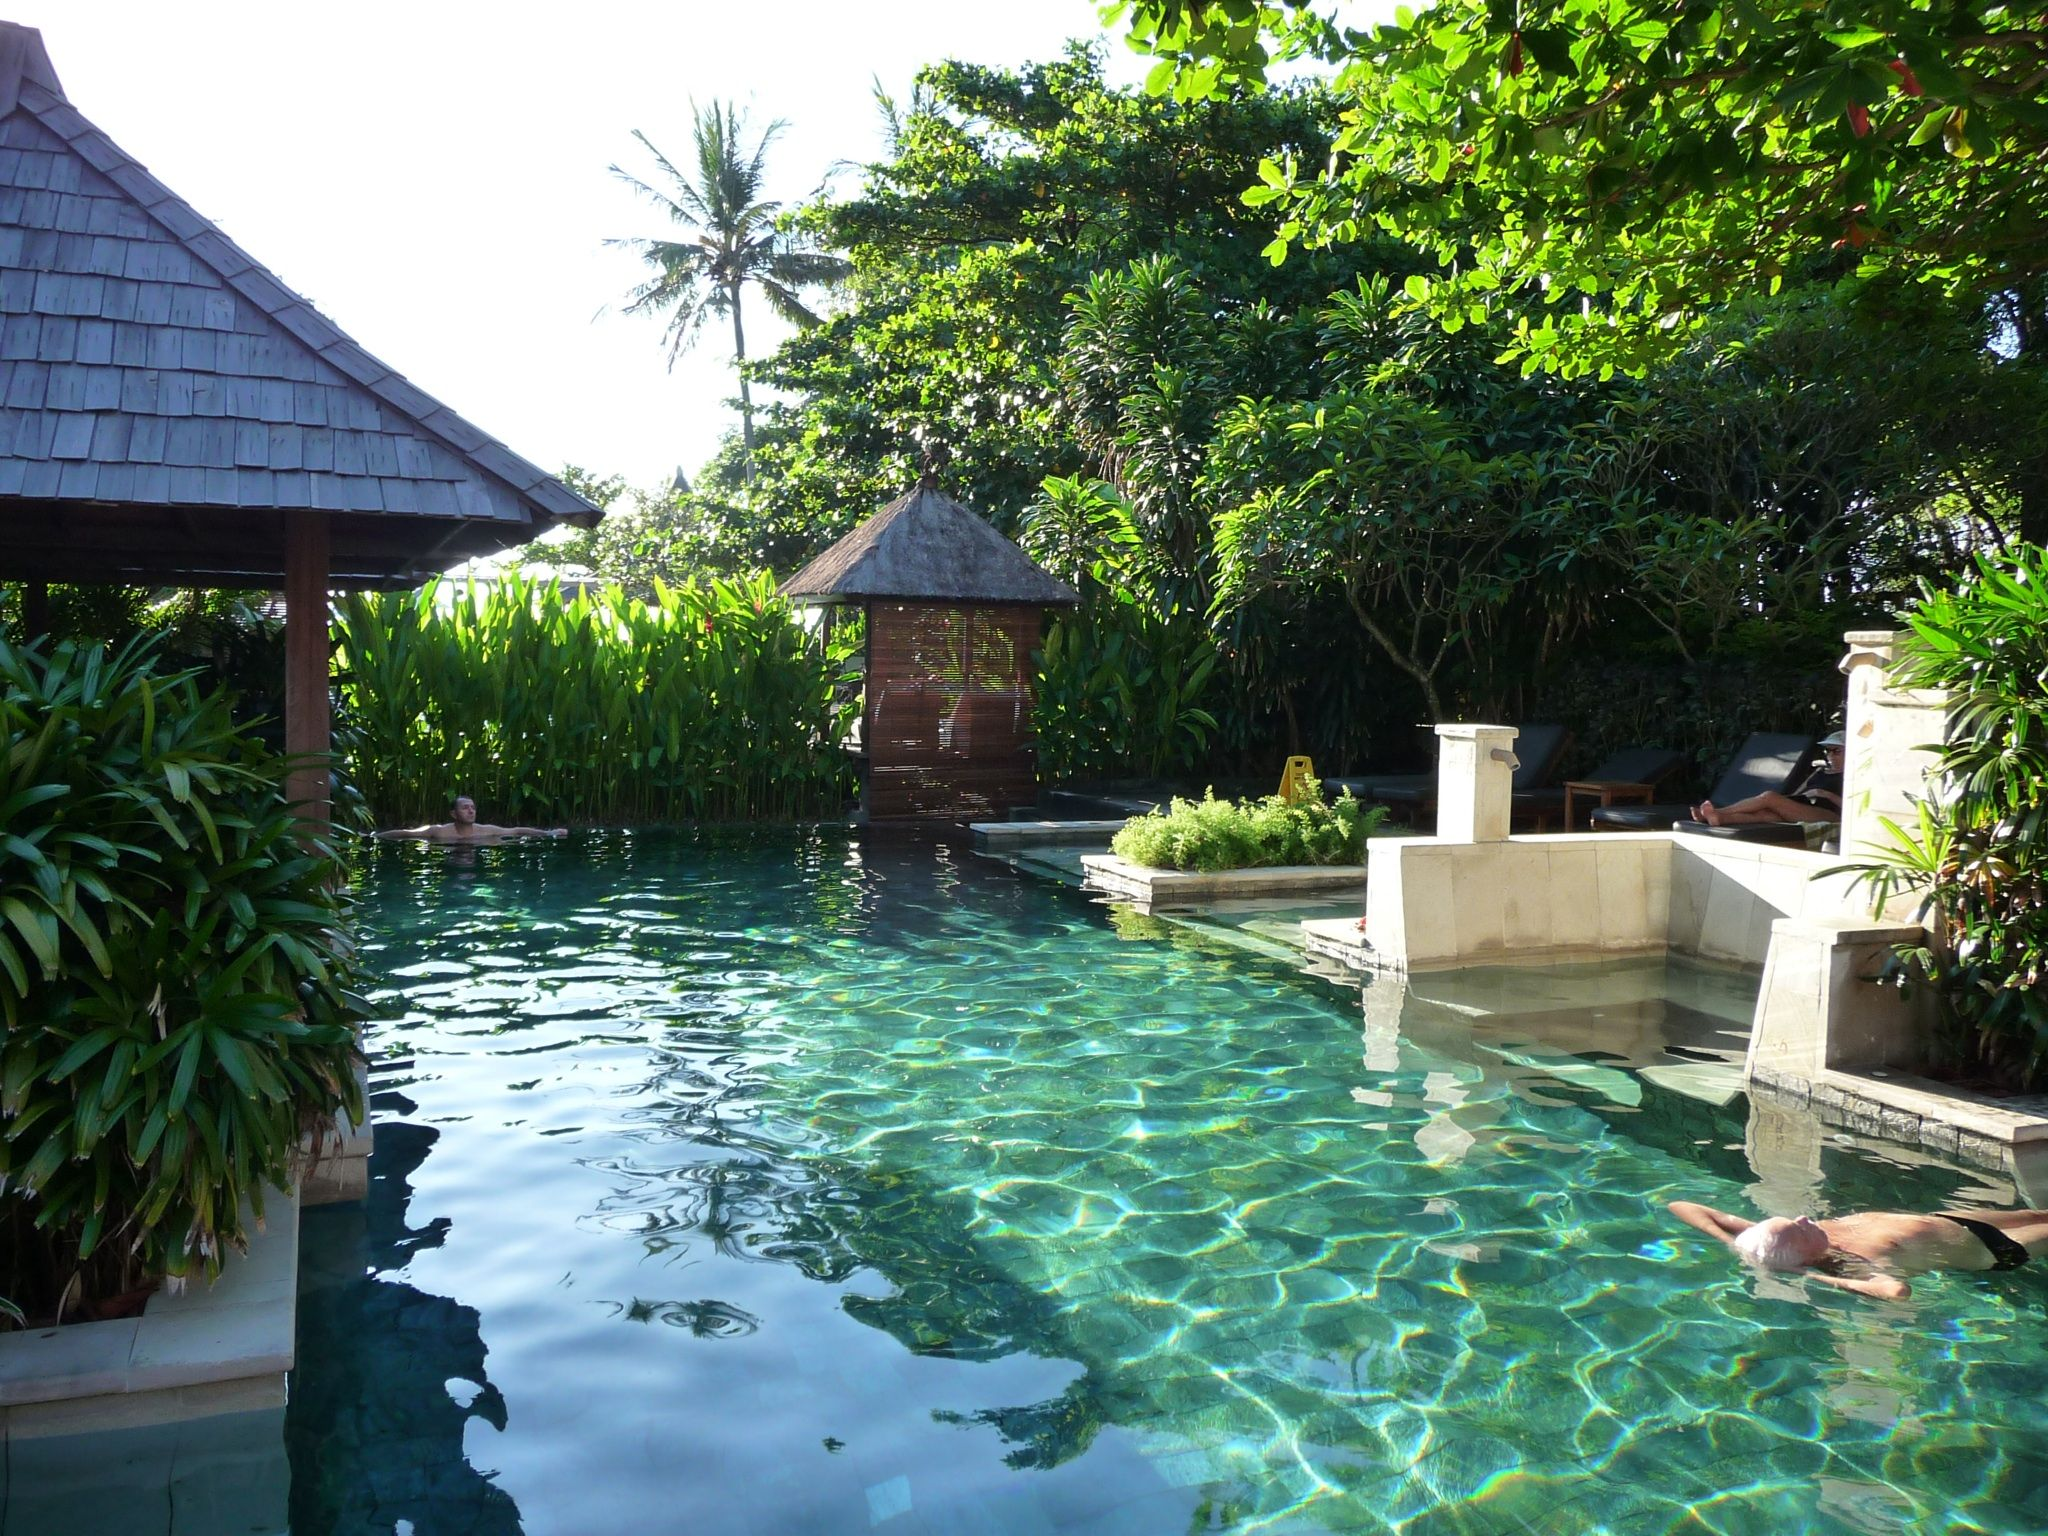 Pool at Bali Gardens Hotel Kuta Bali | Hotel Pools | Pinterest ...